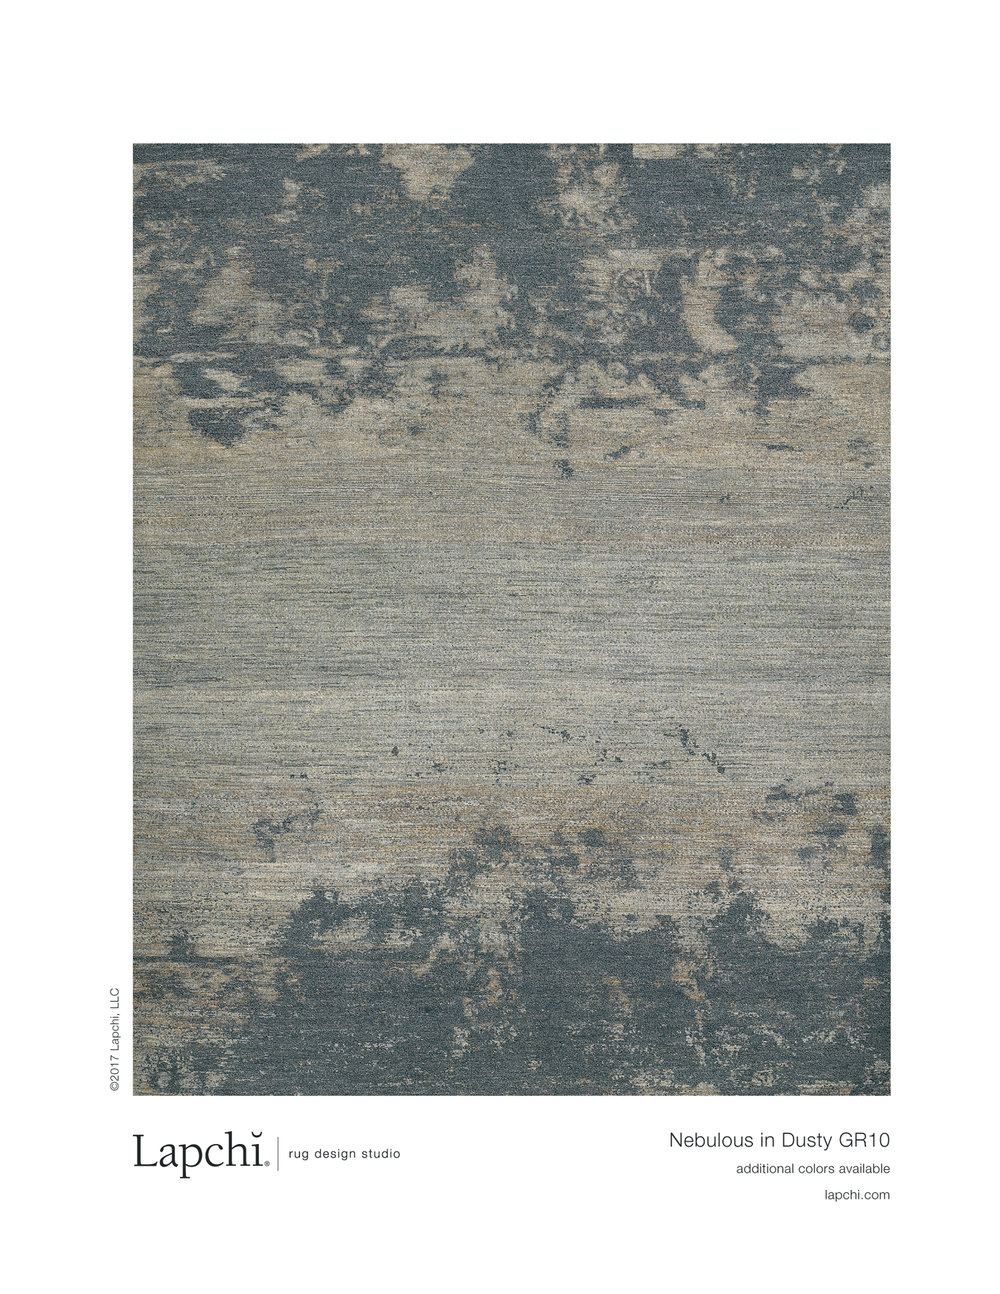 Nebulous area rug in dusty from Lapchi rug design studio.